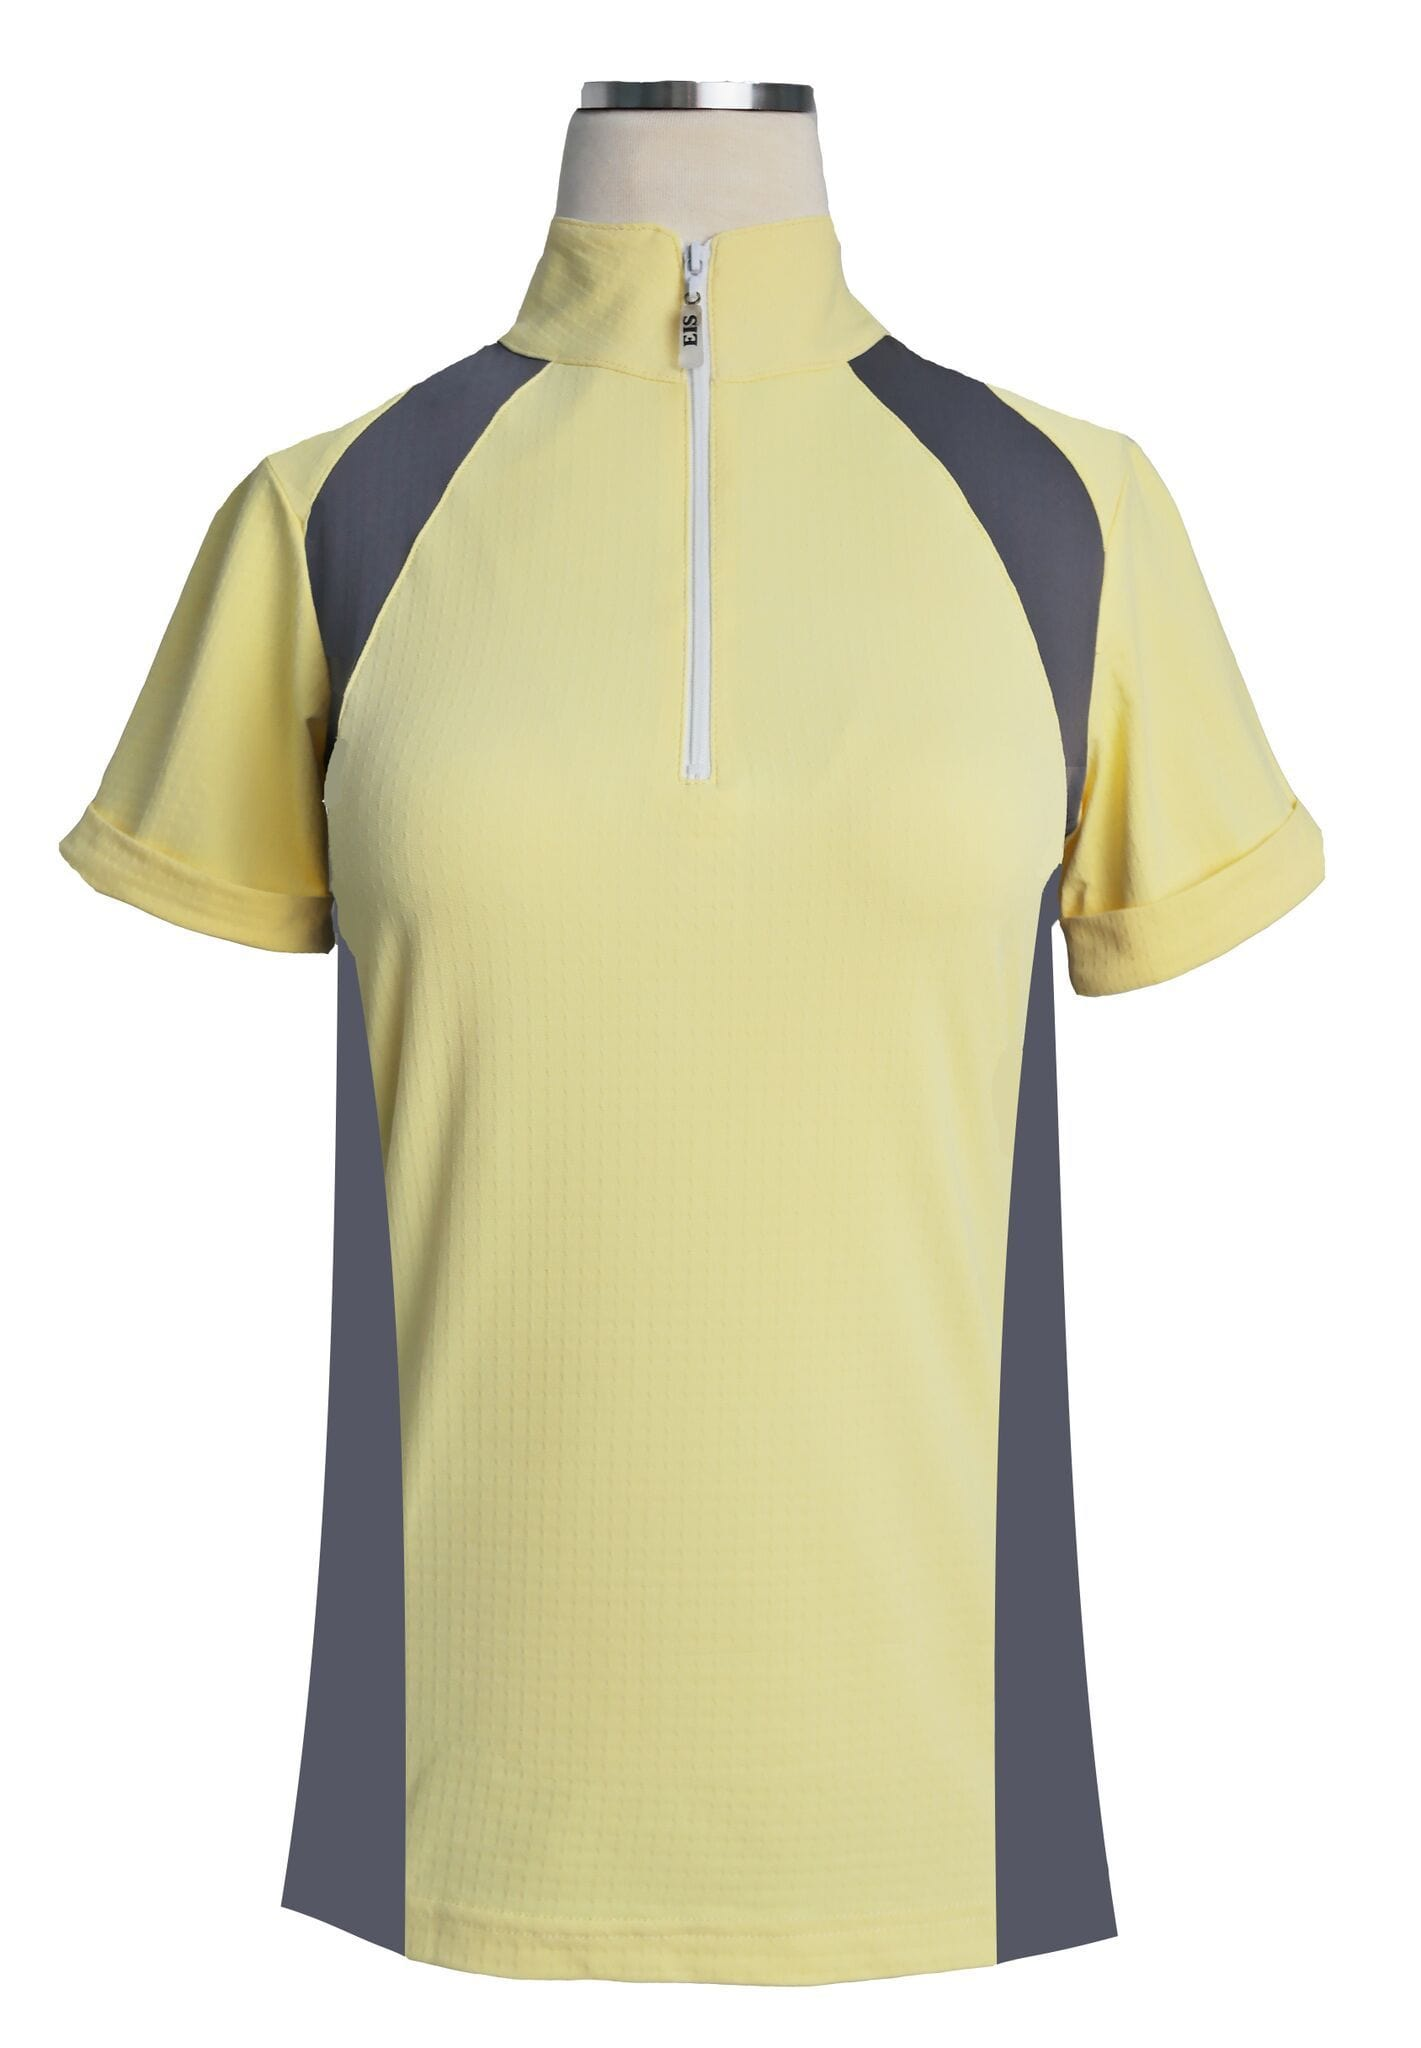 EIS Shirt EIS Yellow Paneled Short Sleeve Sunshirts equestrian team apparel online tack store mobile tack store custom farm apparel custom show stable clothing equestrian lifestyle horse show clothing riding clothes horses equestrian tack store